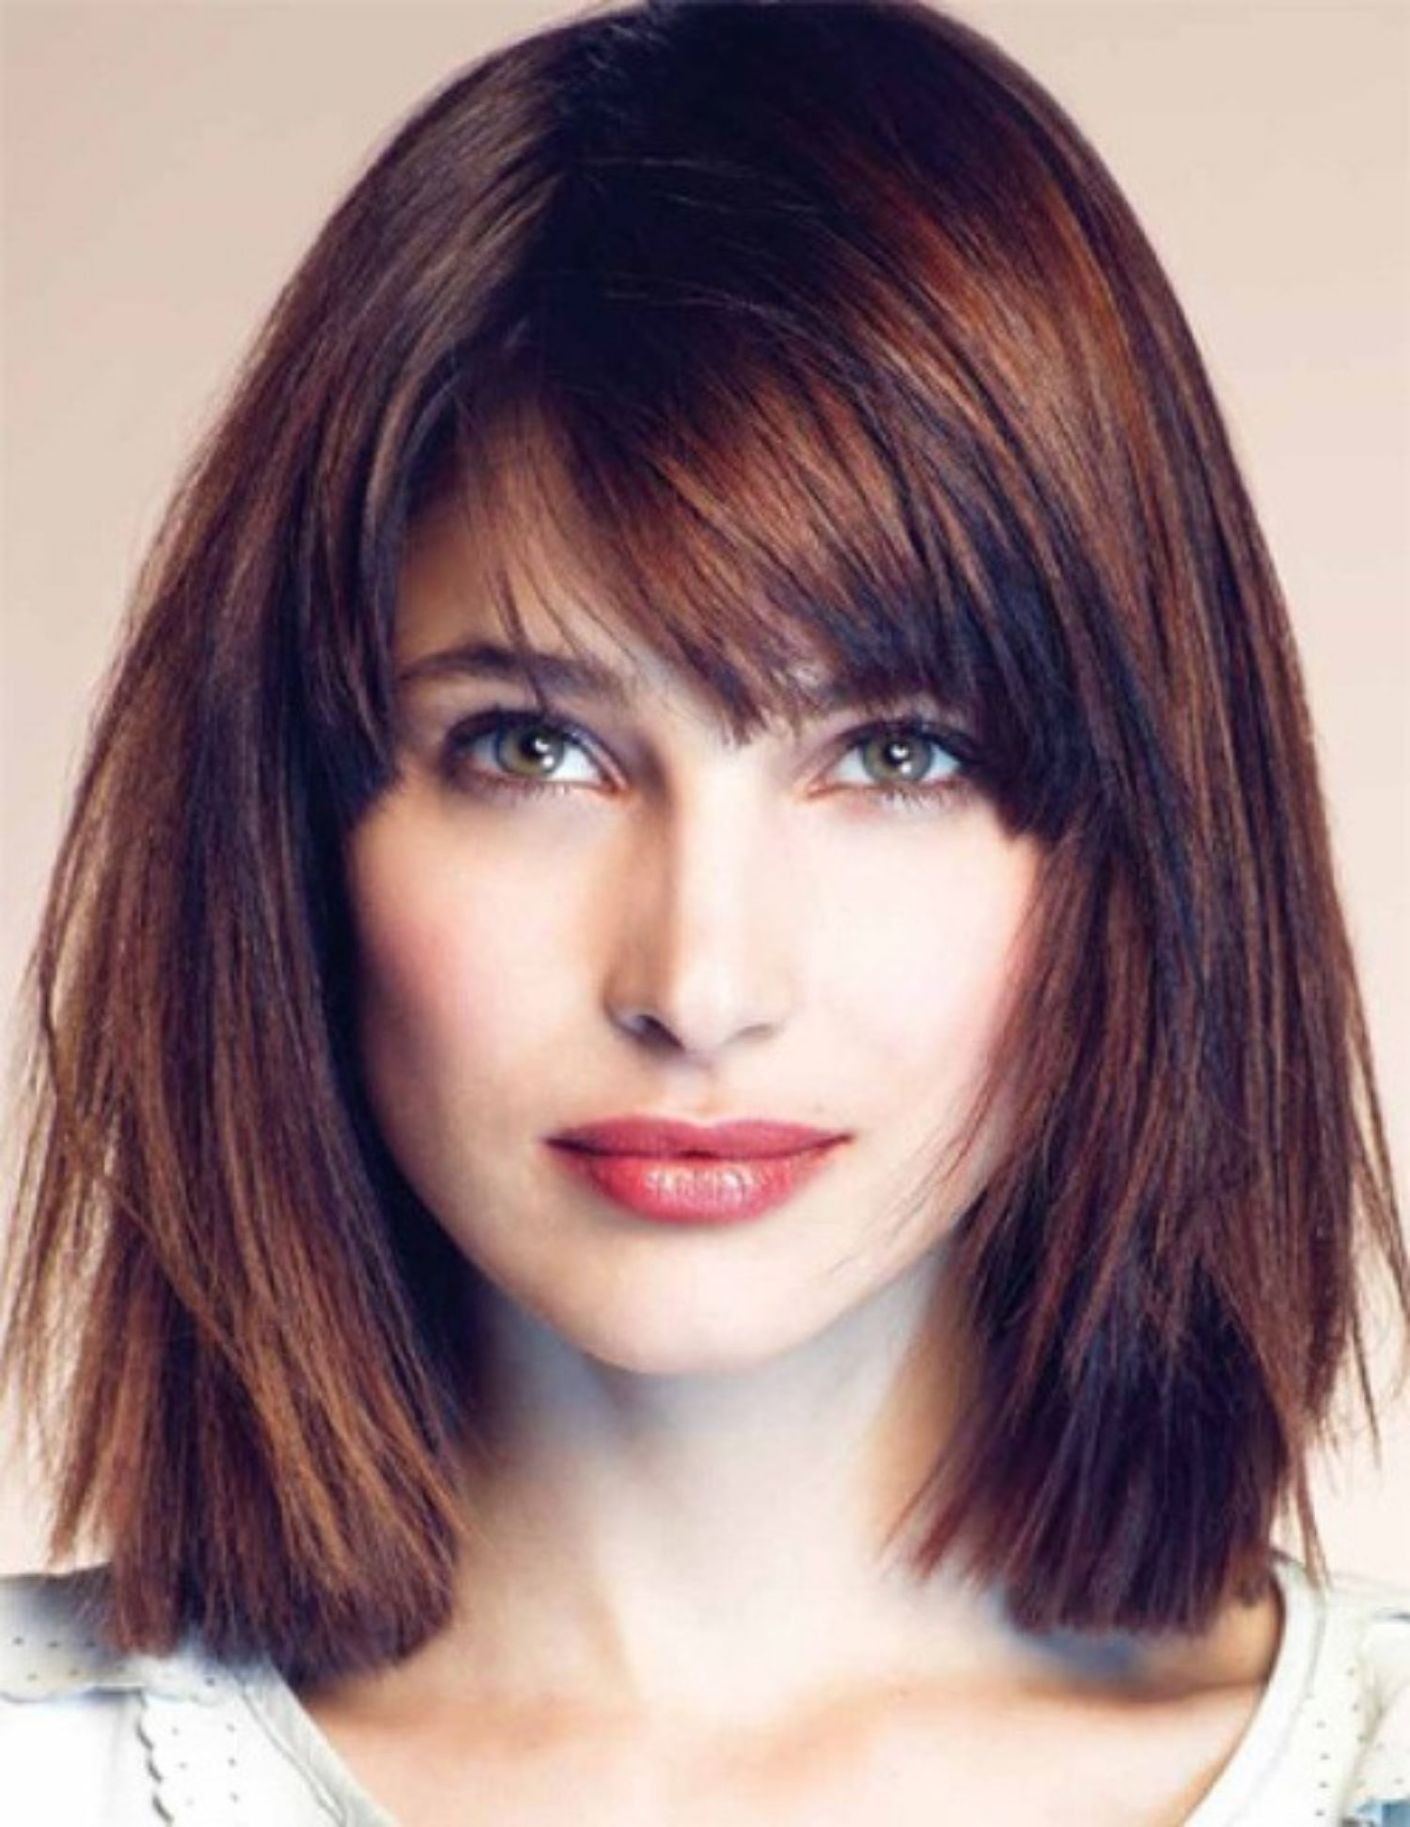 24 Best Hairstyles For Square Faces In 2020 Square Face Hairstyles Hair Styles Haircut For Square Face